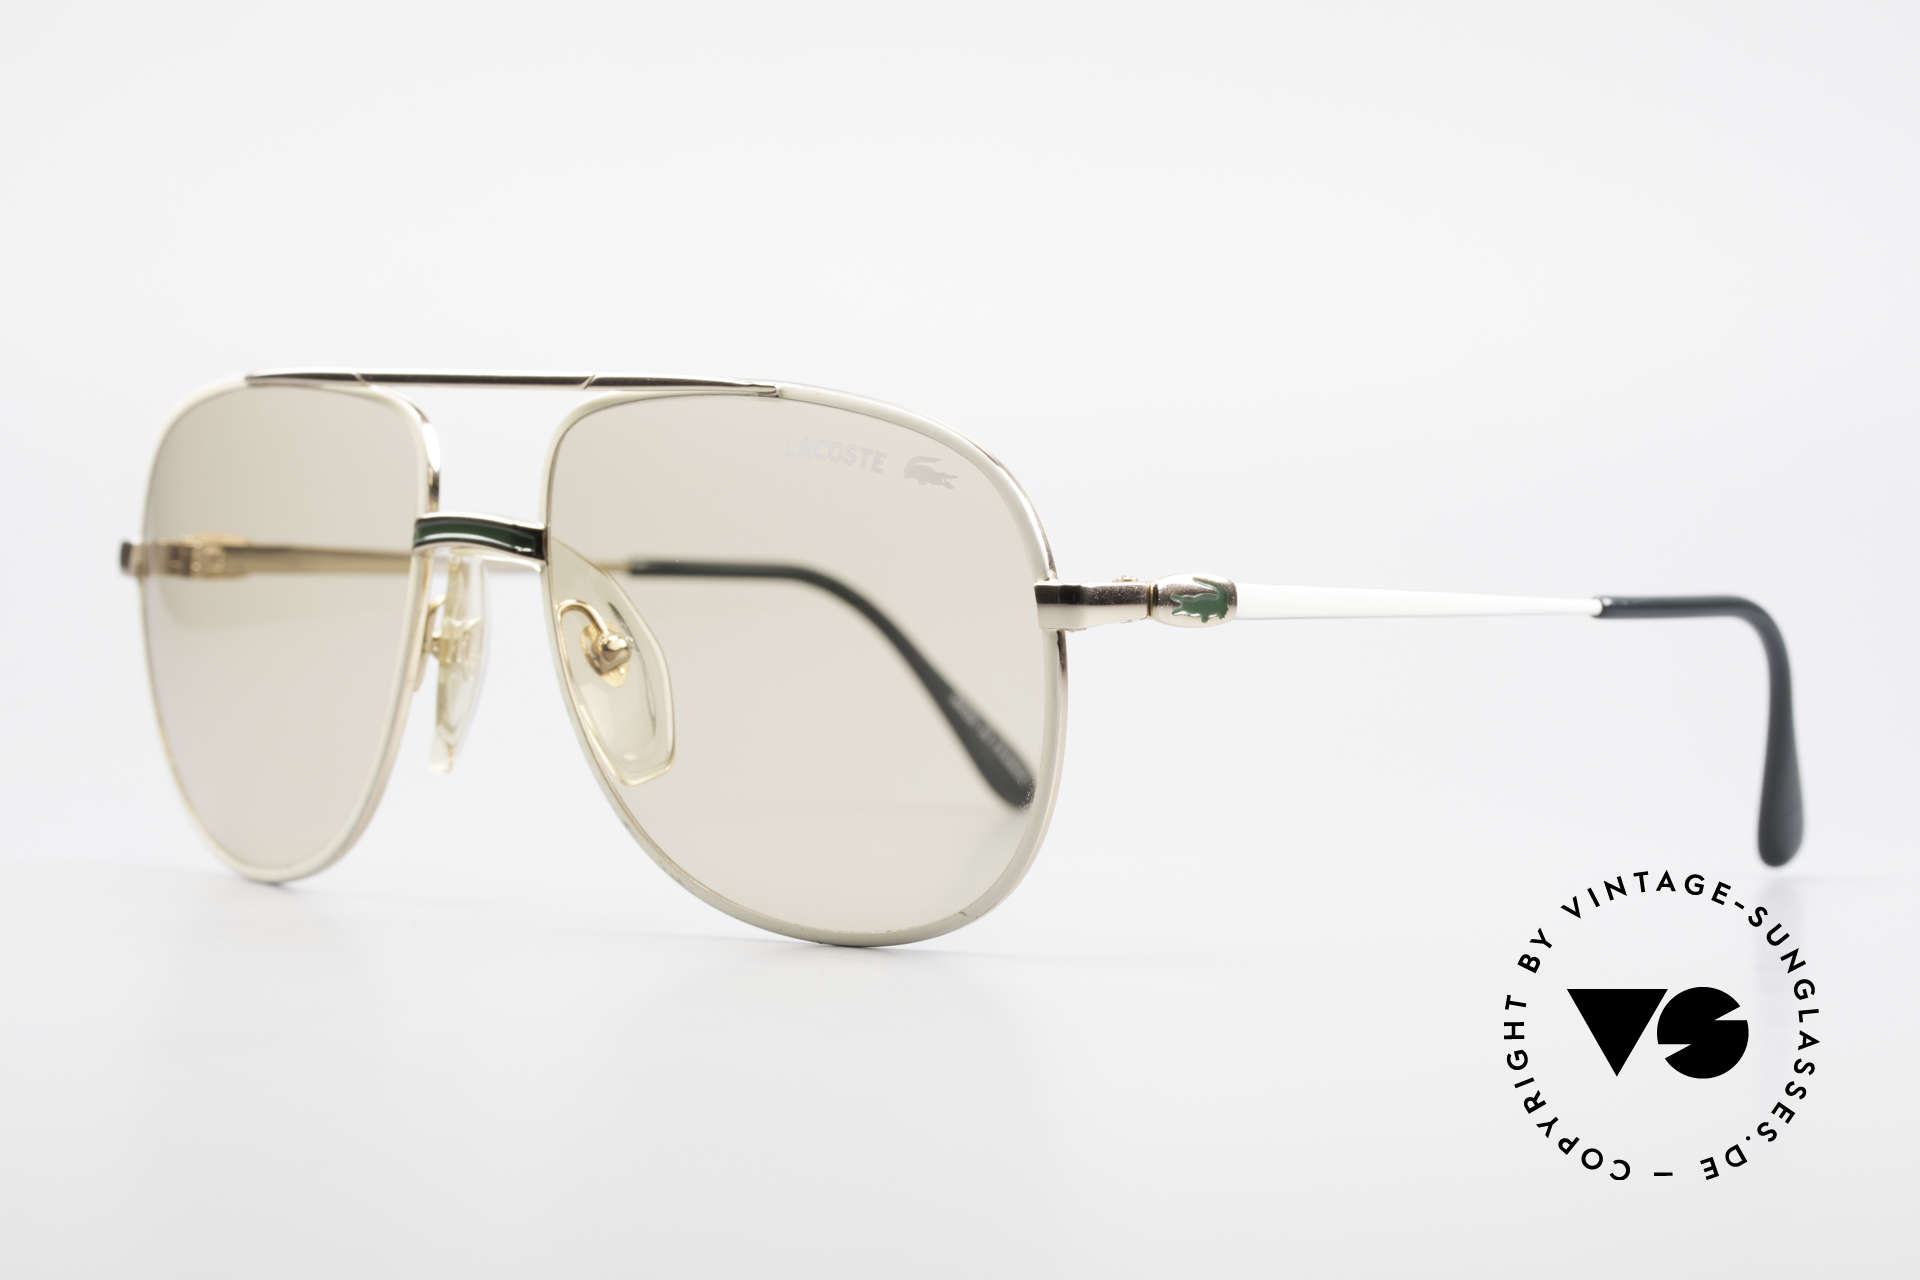 Lacoste 101 Lacoste Changeable Lenses, this pair comes from the 80's with CHANGEABLE lenses, Made for Men